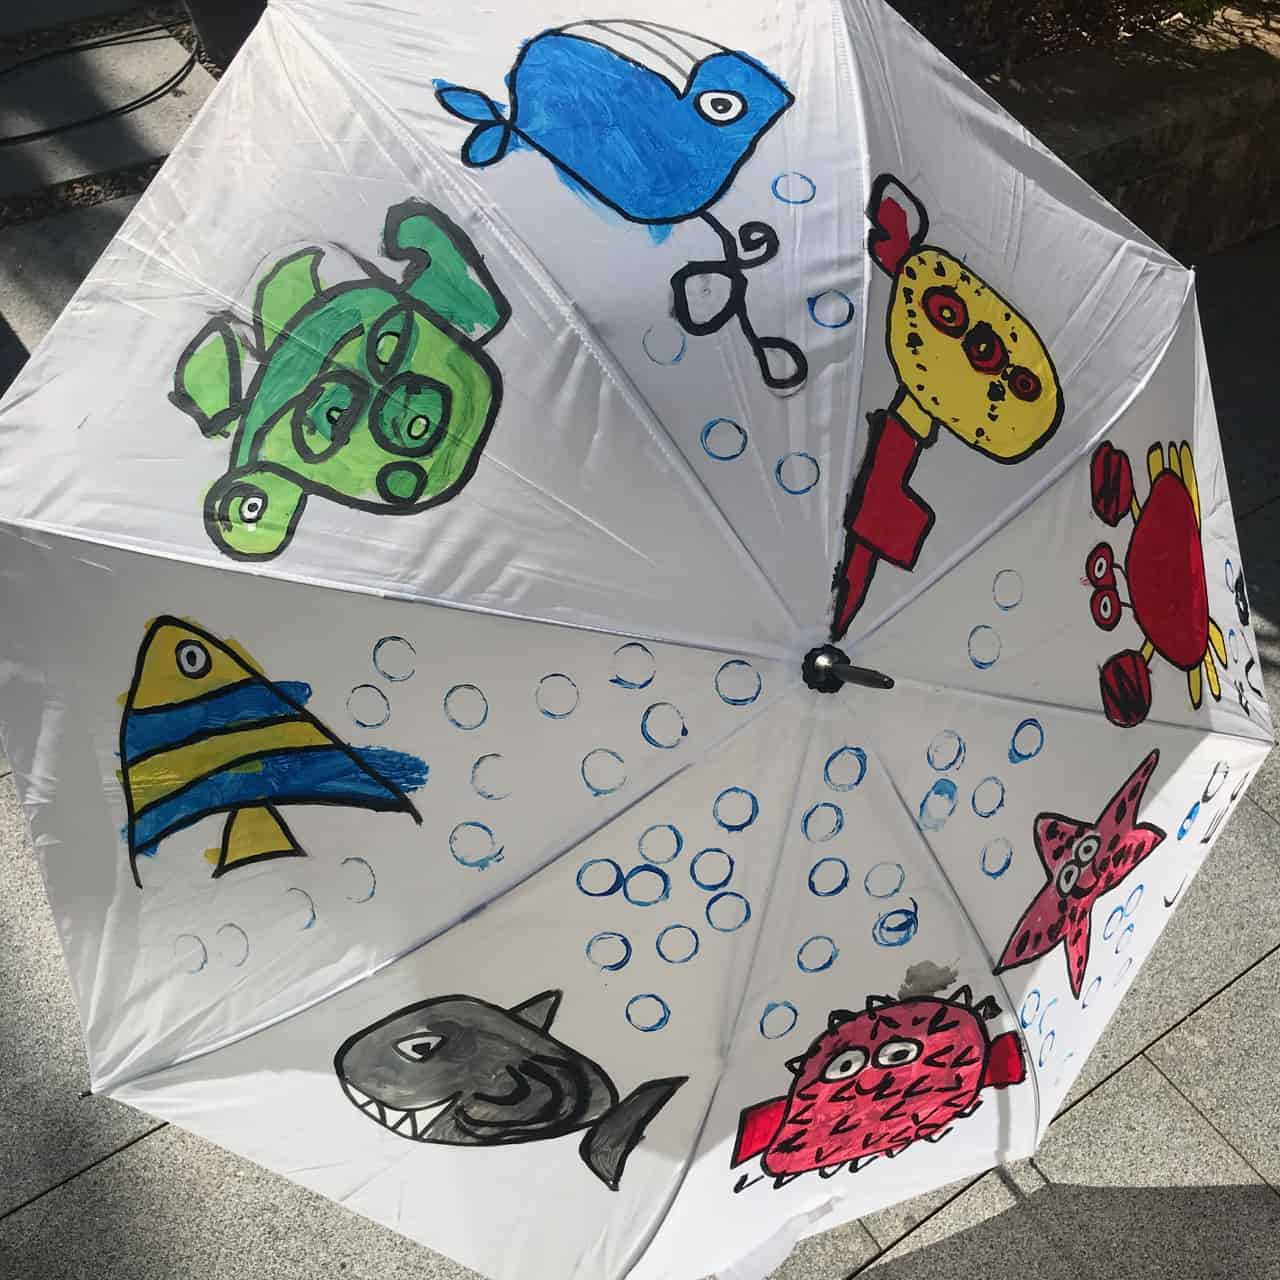 Les Petits Painters preschool arts and crafts, art school for children, nylon umbrella painting with nylon paint from Japan, submarine and marine life drawing and painting, 3-5 year old projects